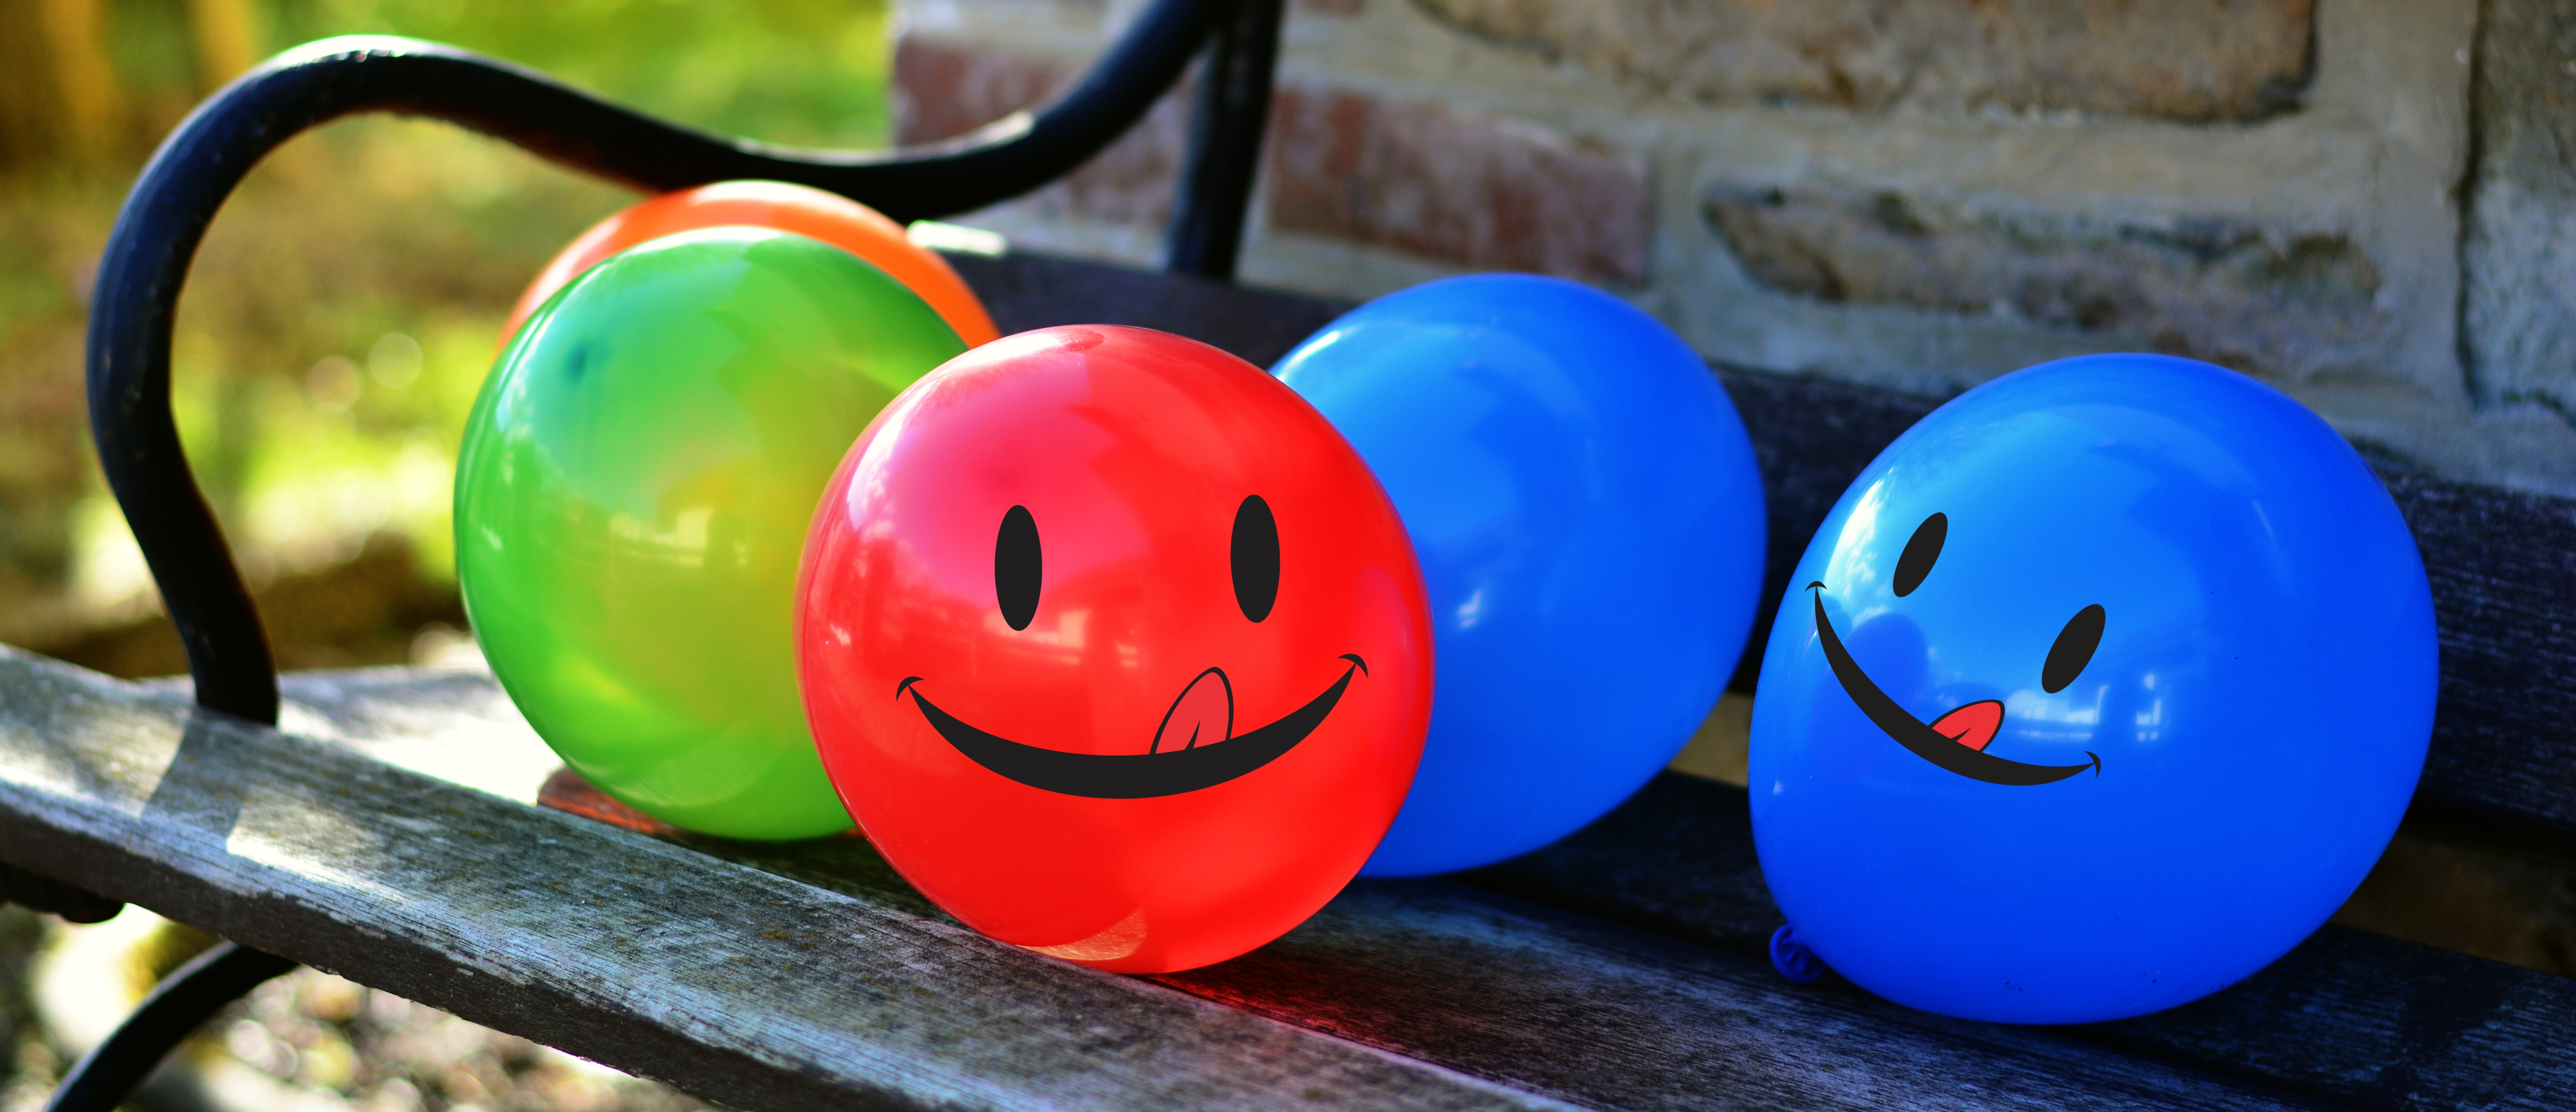 156127 Screensavers and Wallpapers Smile for phone. Download Balloons, Miscellanea, Miscellaneous, Multicolored, Motley, Smile, Emoticon, Smiley, Air Balloons pictures for free